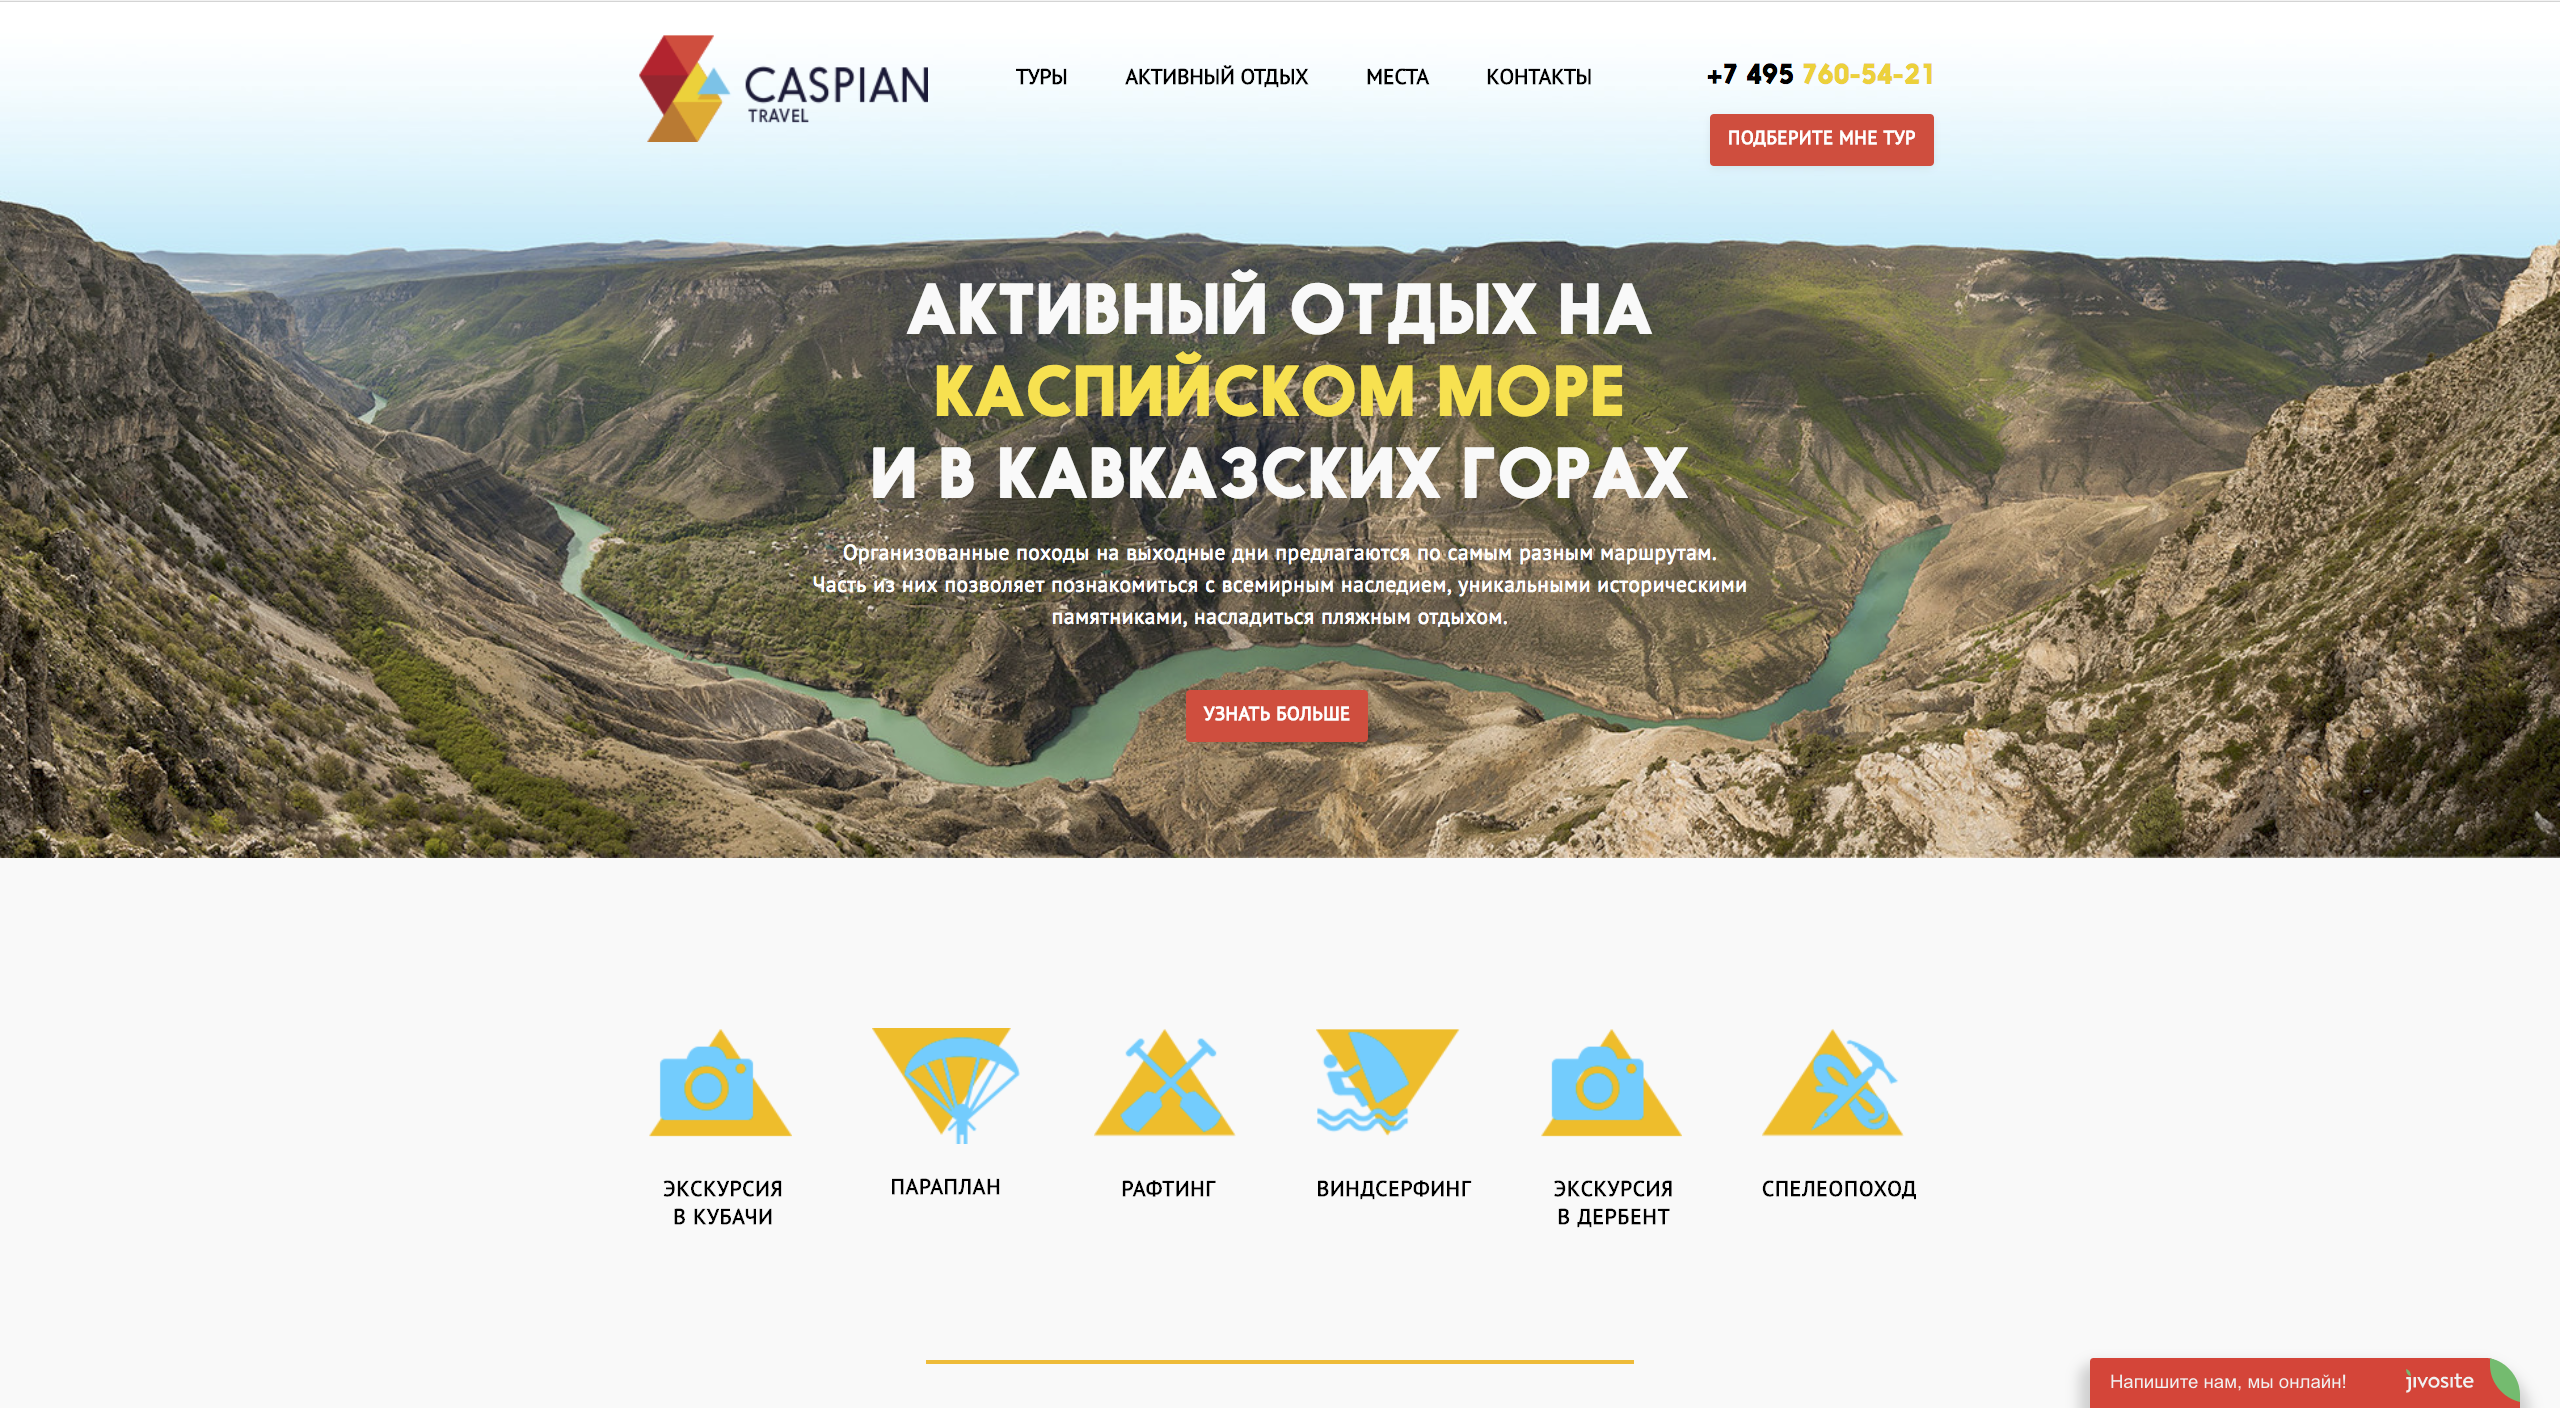 Caspian Travel